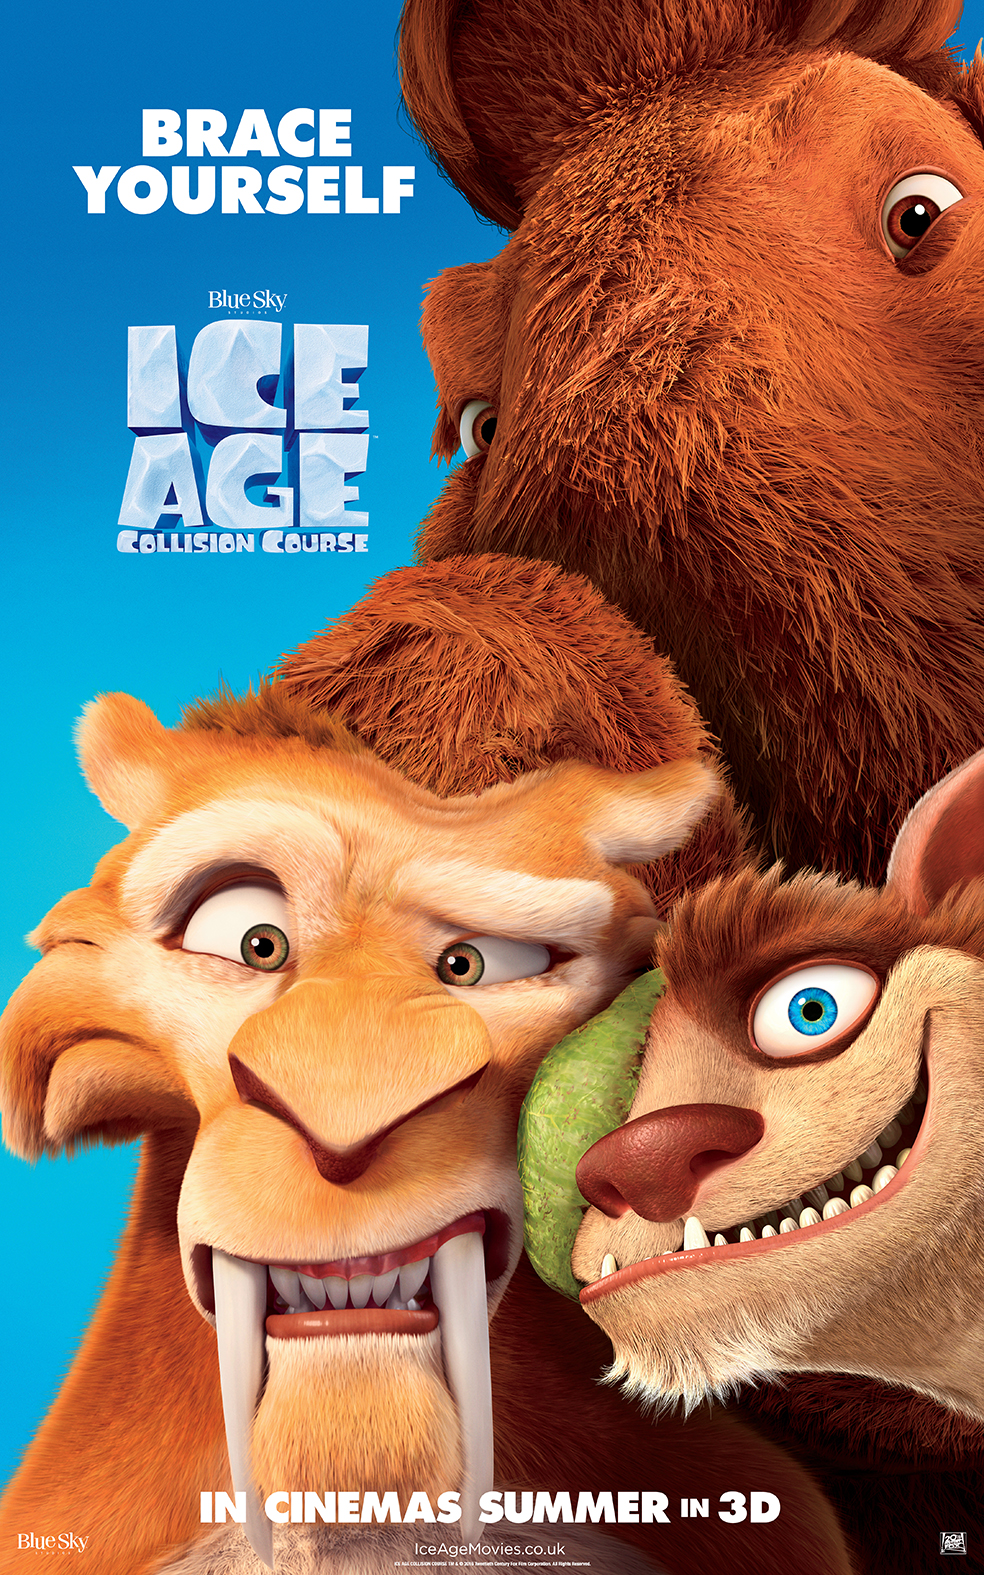 IceAge5_Manny_CampC_5x8_Banner